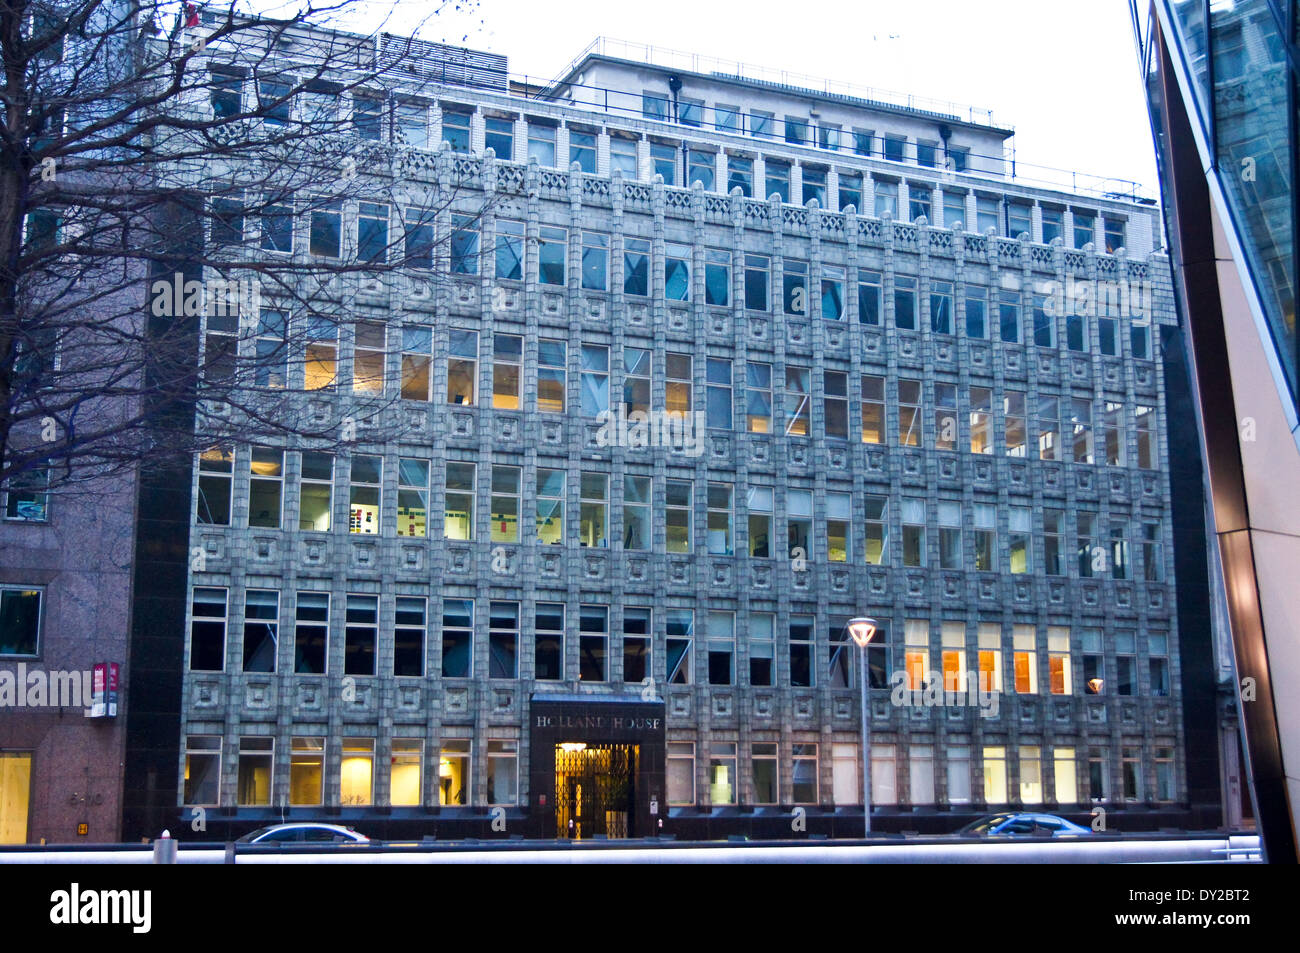 Holland House, by Hendrik Petrus Berlage, 1916, Bury Street, City of London, England, UK Stock Photo